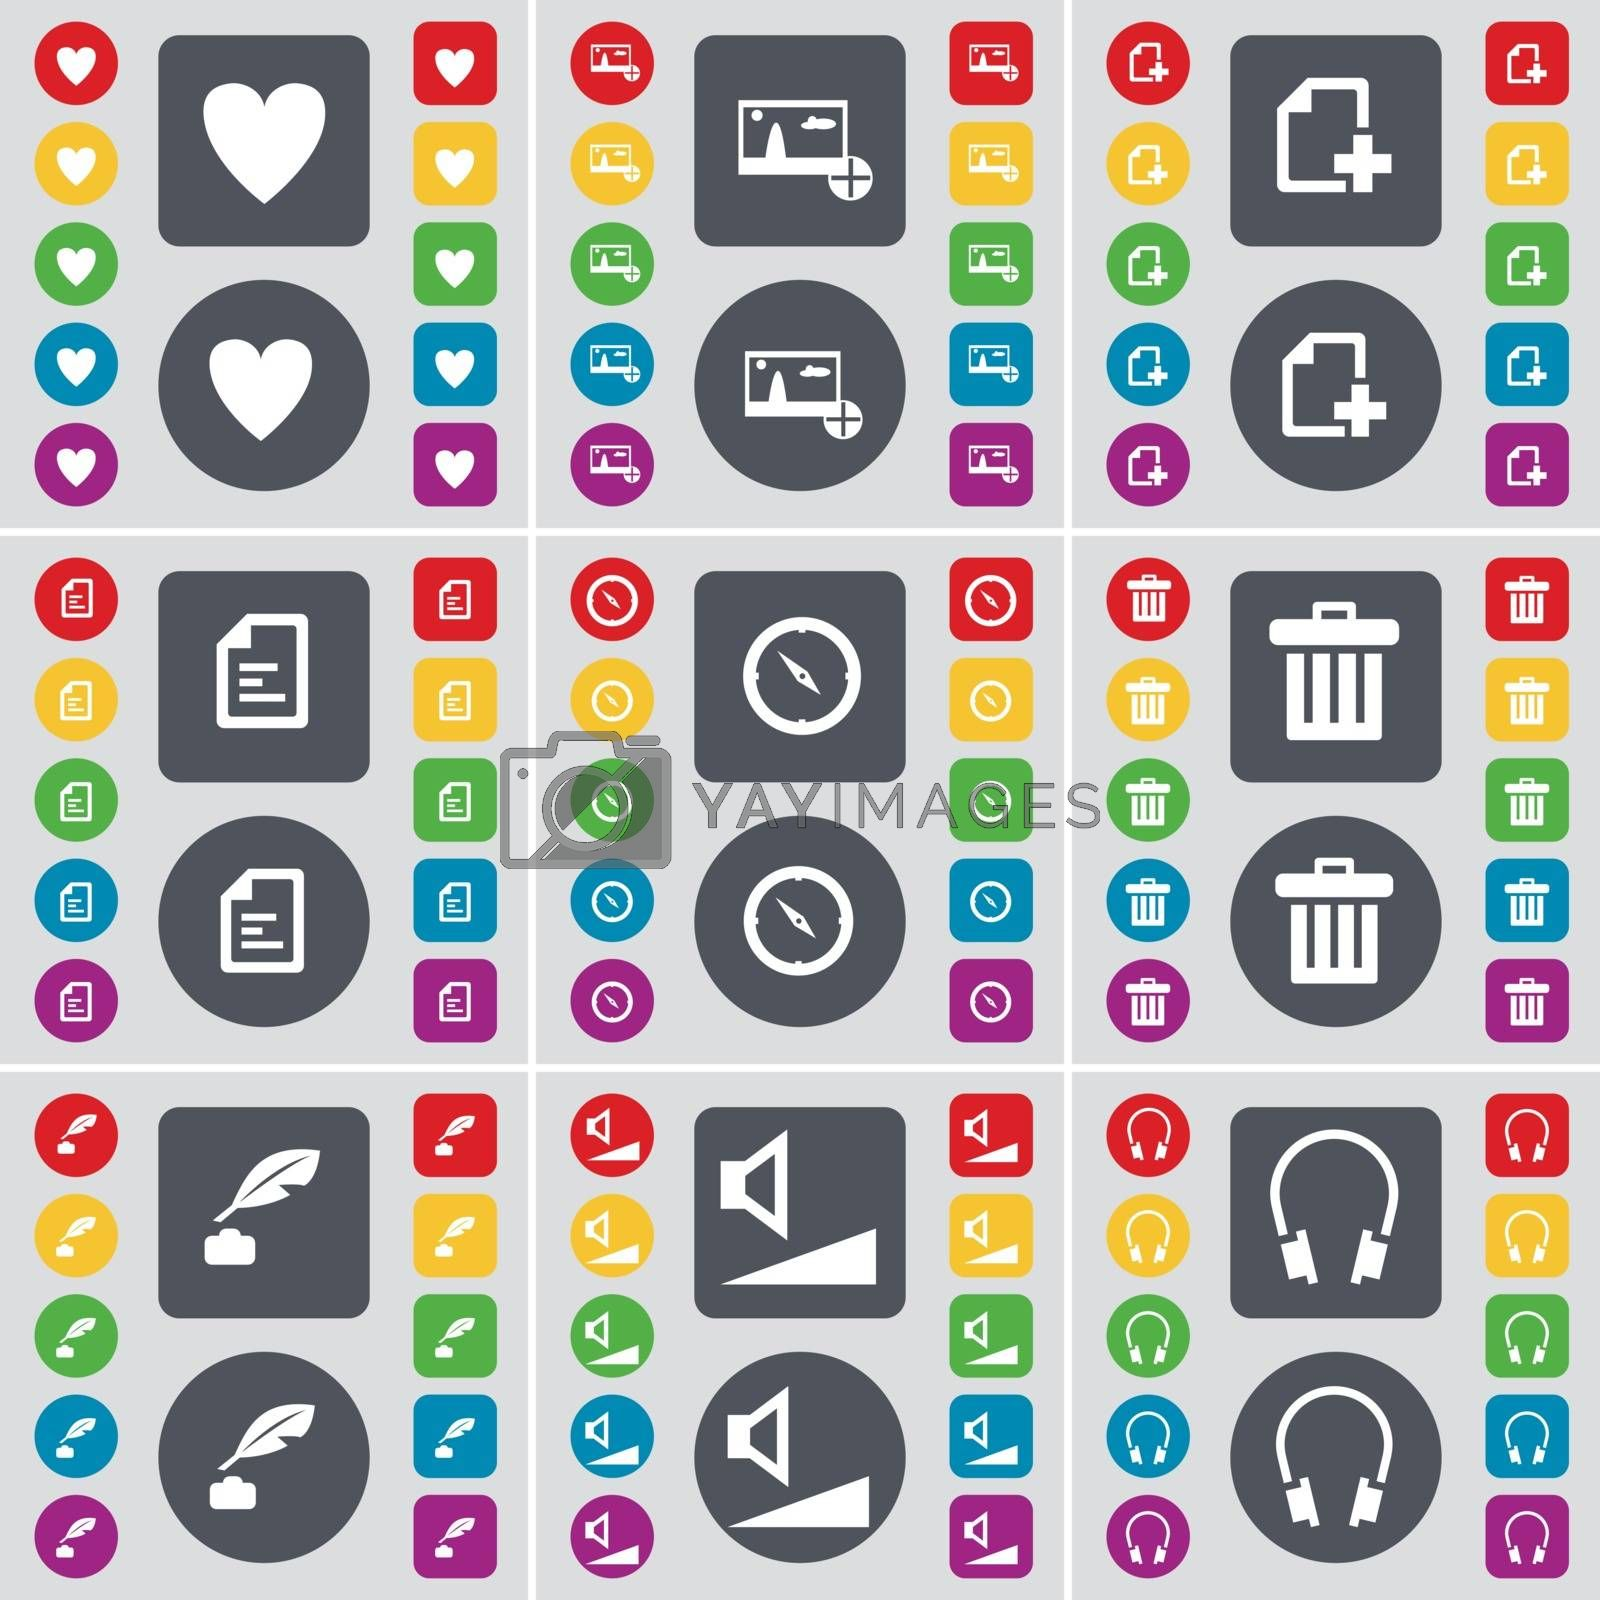 Royalty free image of Heart, Picture, File, Text file, Compass, Trash can, Ink pot, Volume, Headphones icon symbol. A large set of flat, colored buttons for your design. Vector by serhii_lohvyniuk